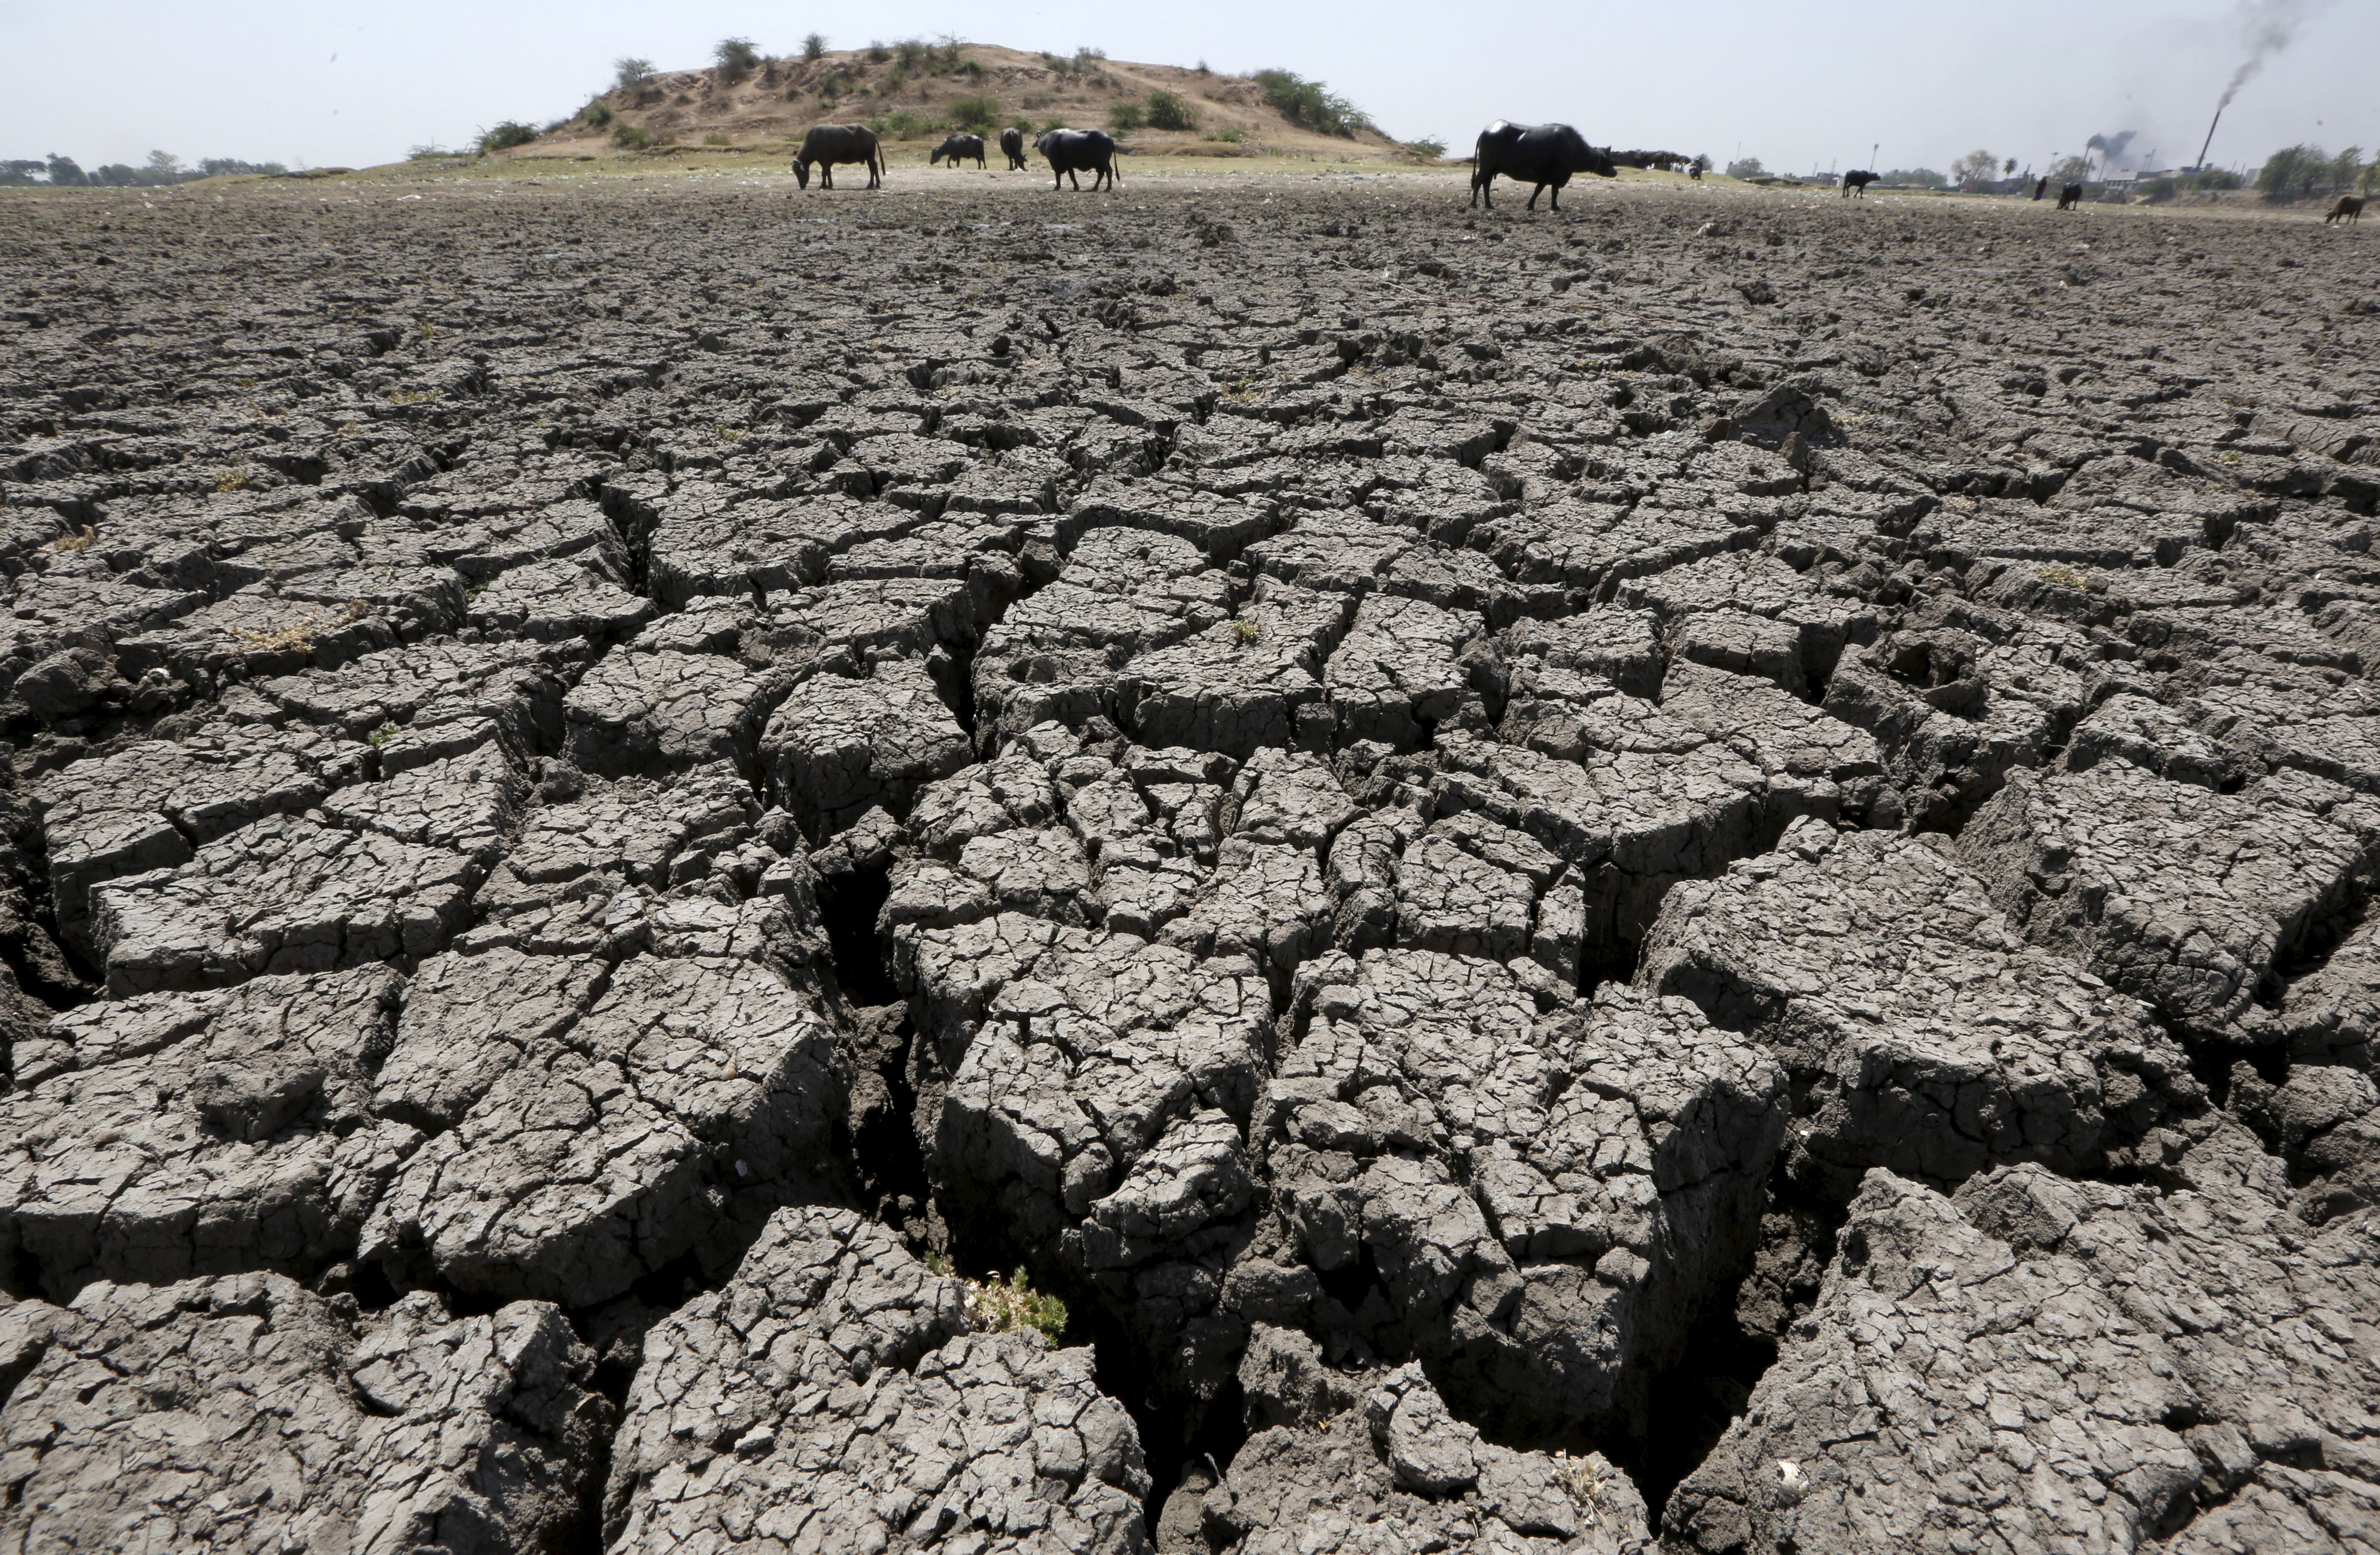 Natural Disasters Drought In India